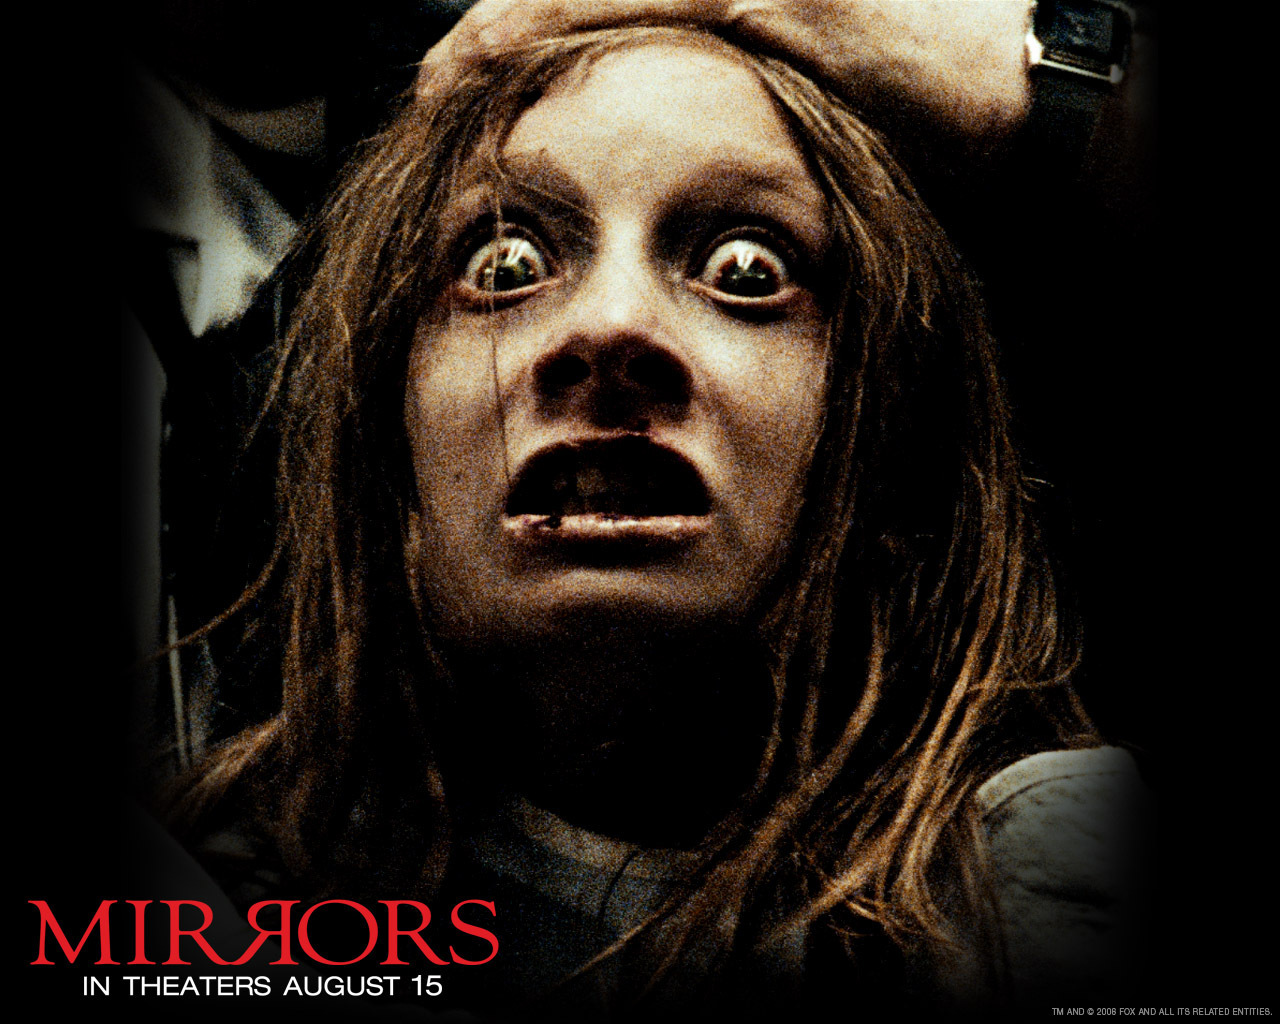 Mirrors horror movies wallpaper 7085484 fanpop for Mirror horror movie